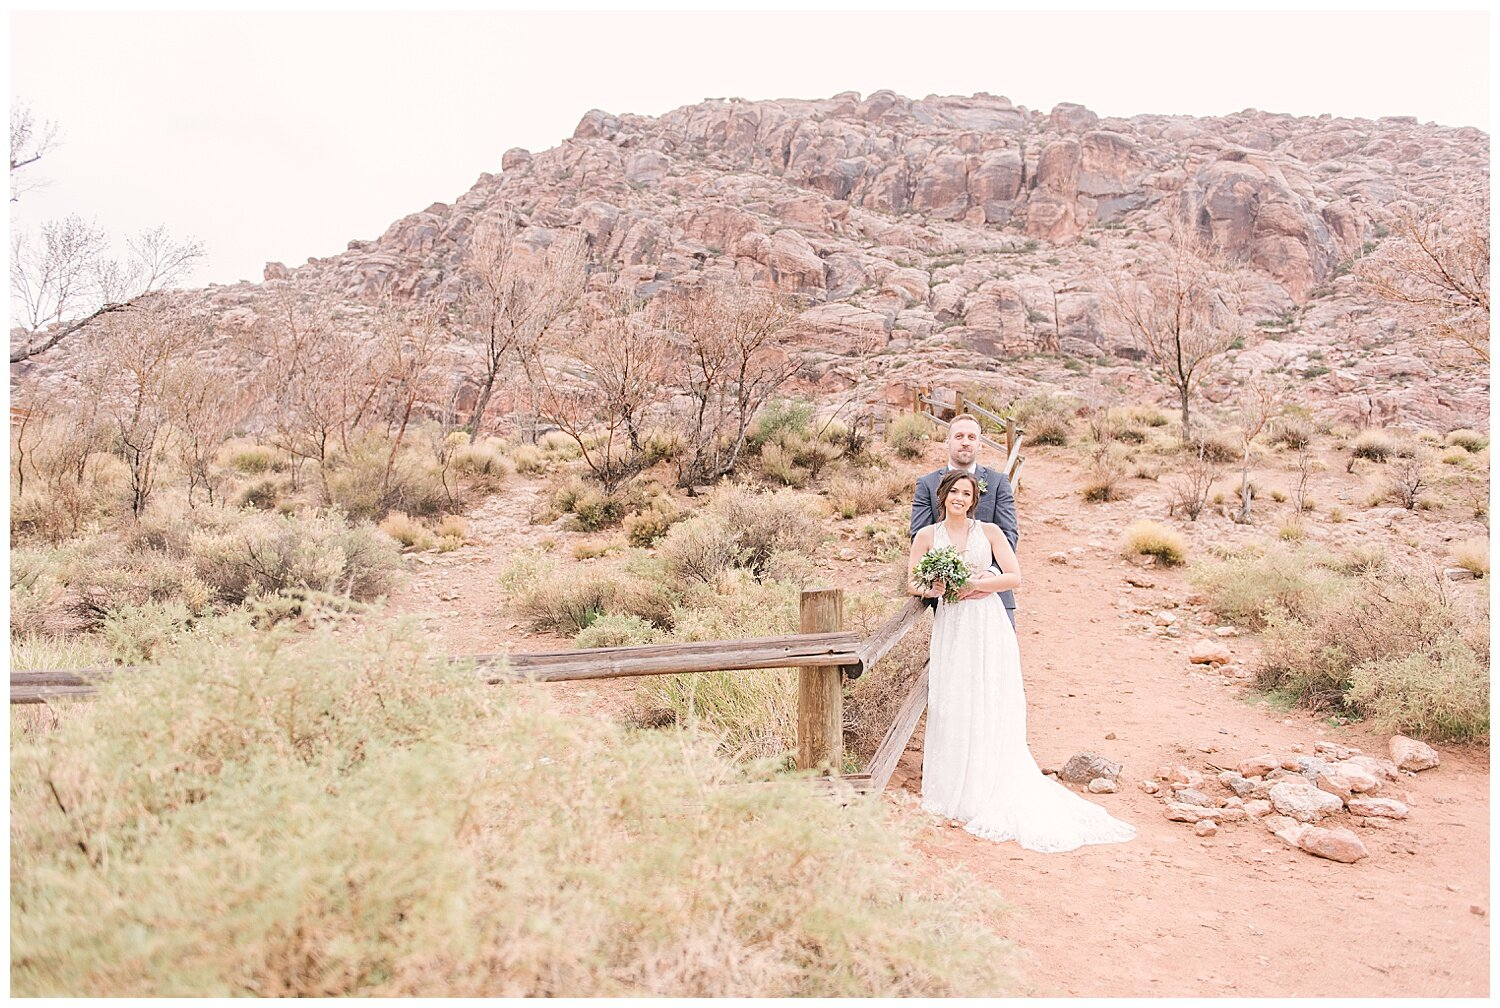 red-rock-canyon-wedding-photographer-blog-02.jpg